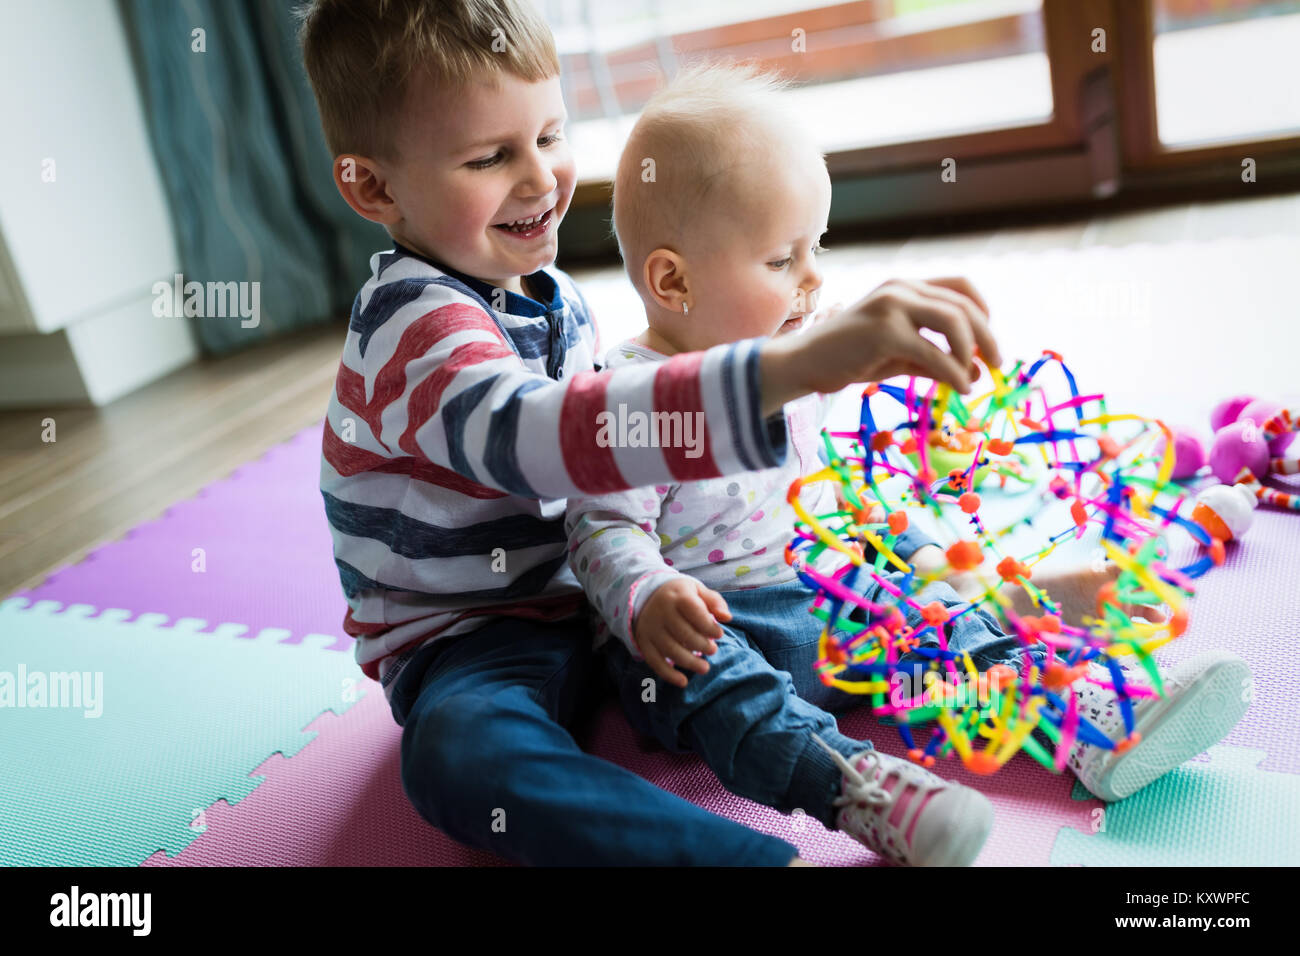 Cute little children playing while sitting on carpet - Stock Image